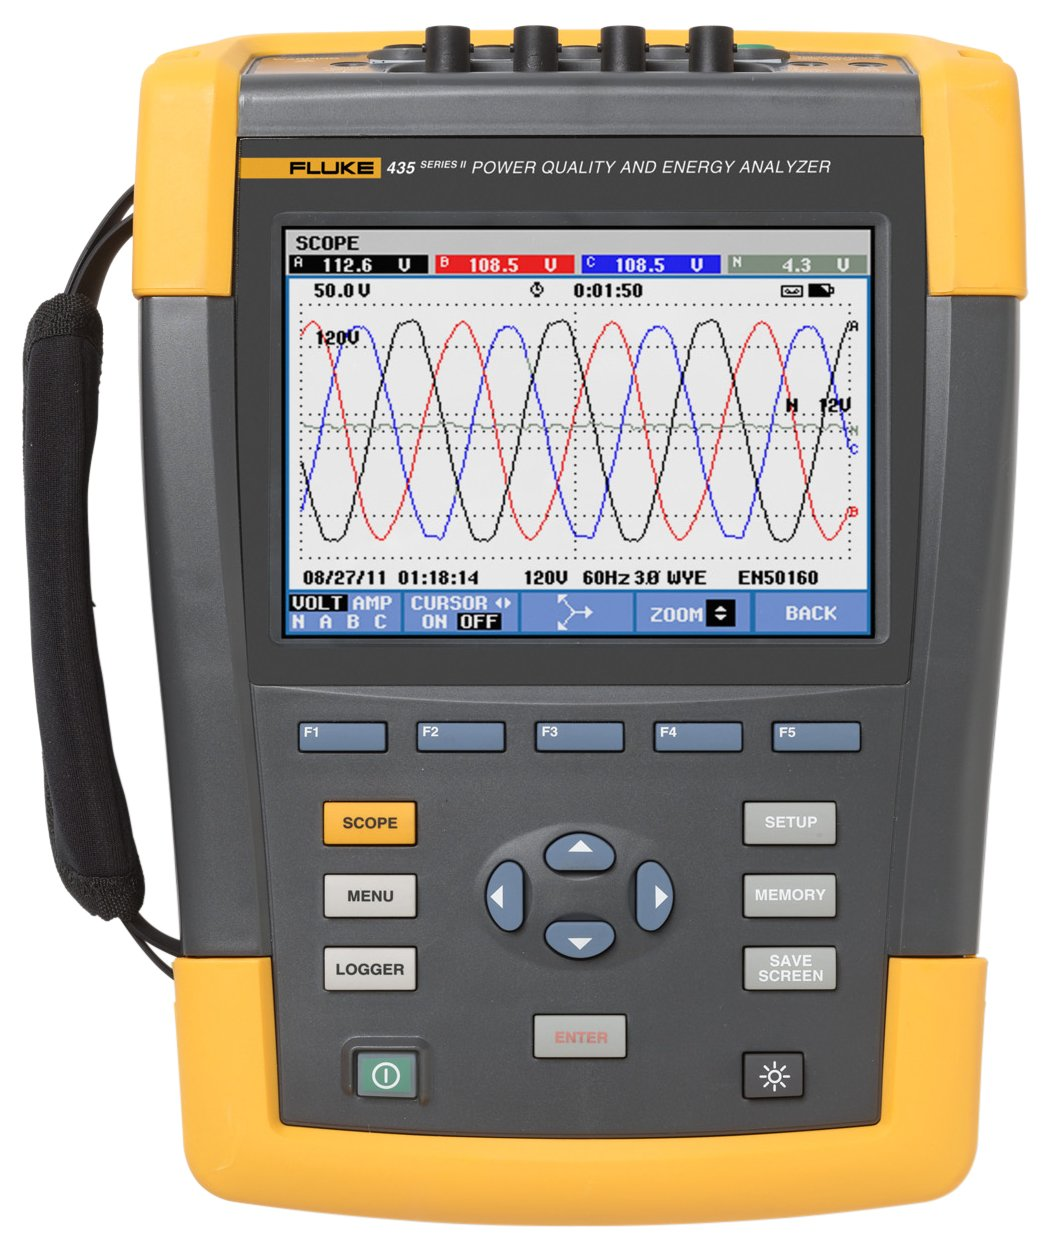 Fluke 435 Series II Three-Phase Power Quality and Energy Analyzer